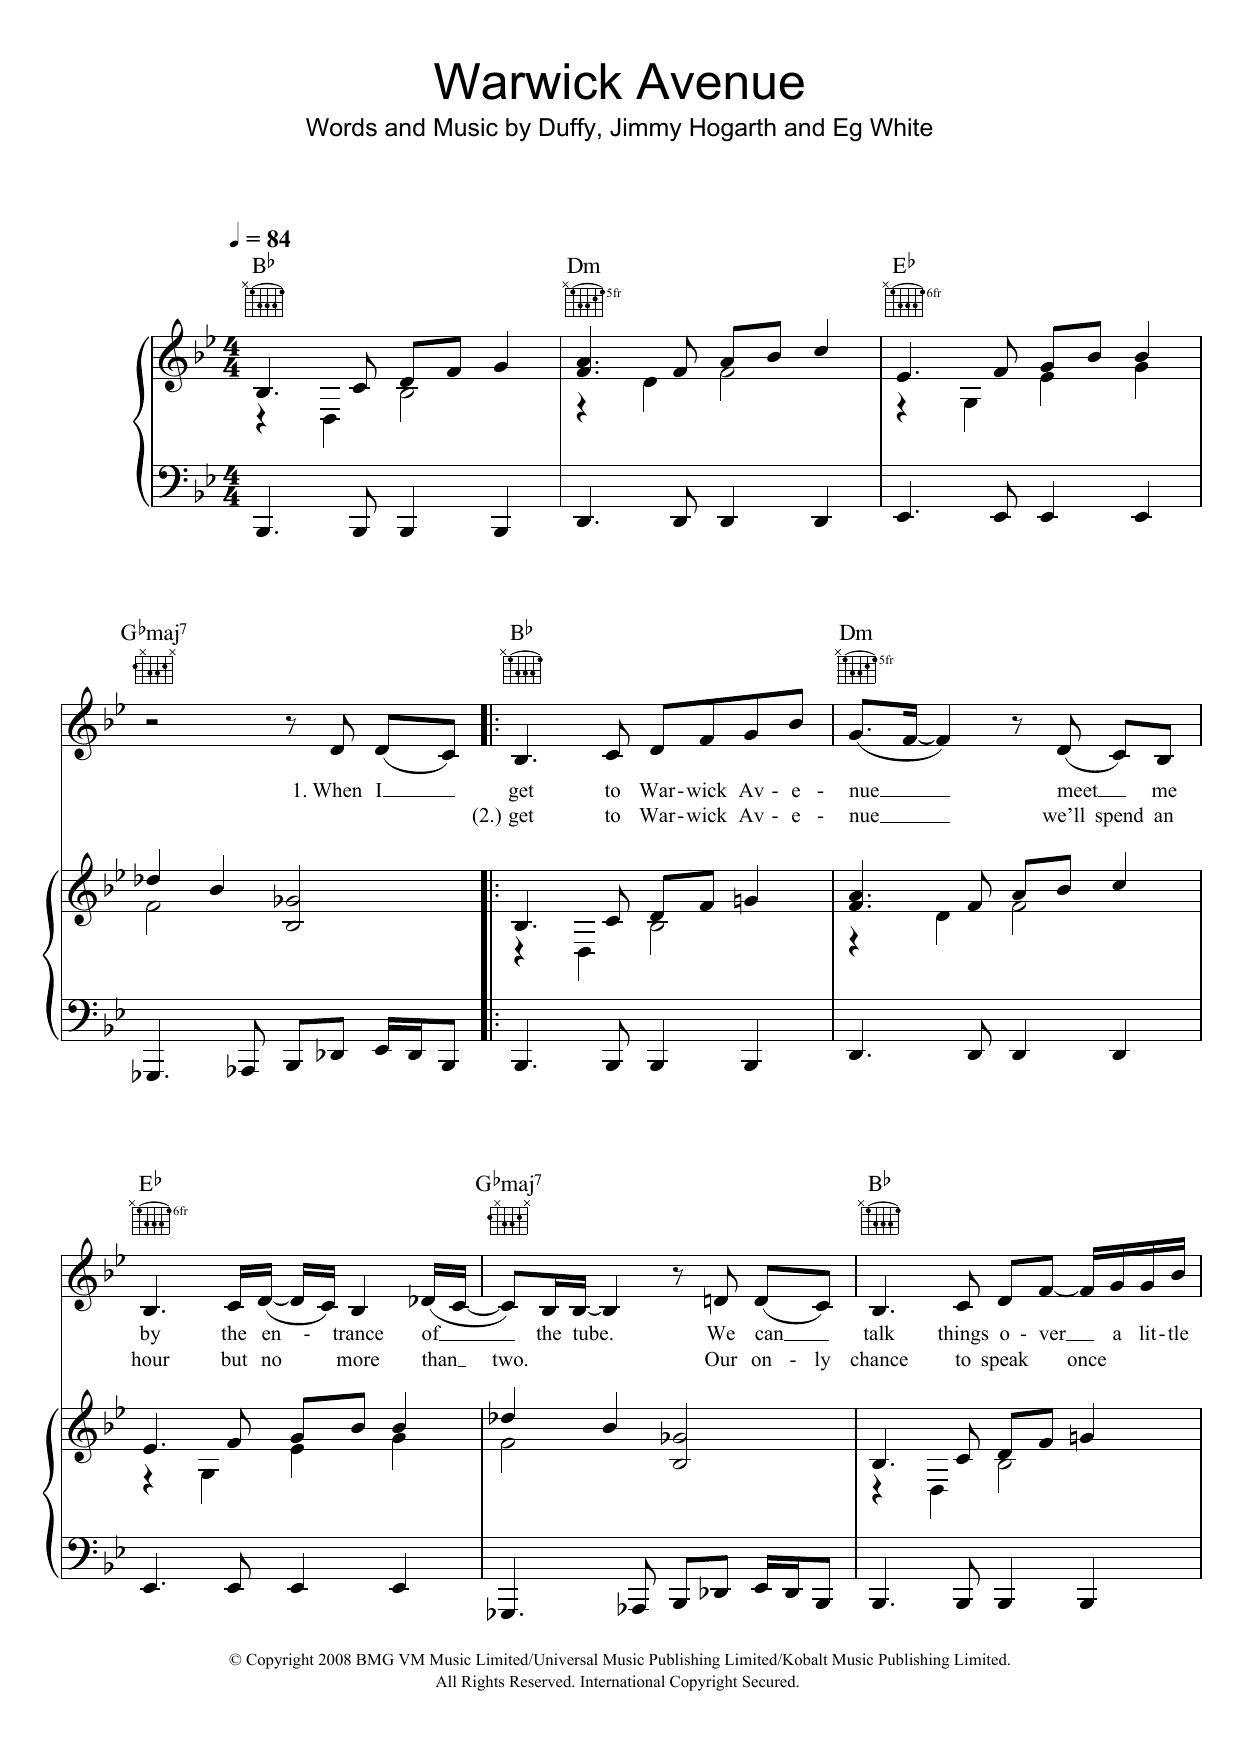 Duffy Warwick Avenue sheet music preview music notes and score for Piano including 3 page(s)